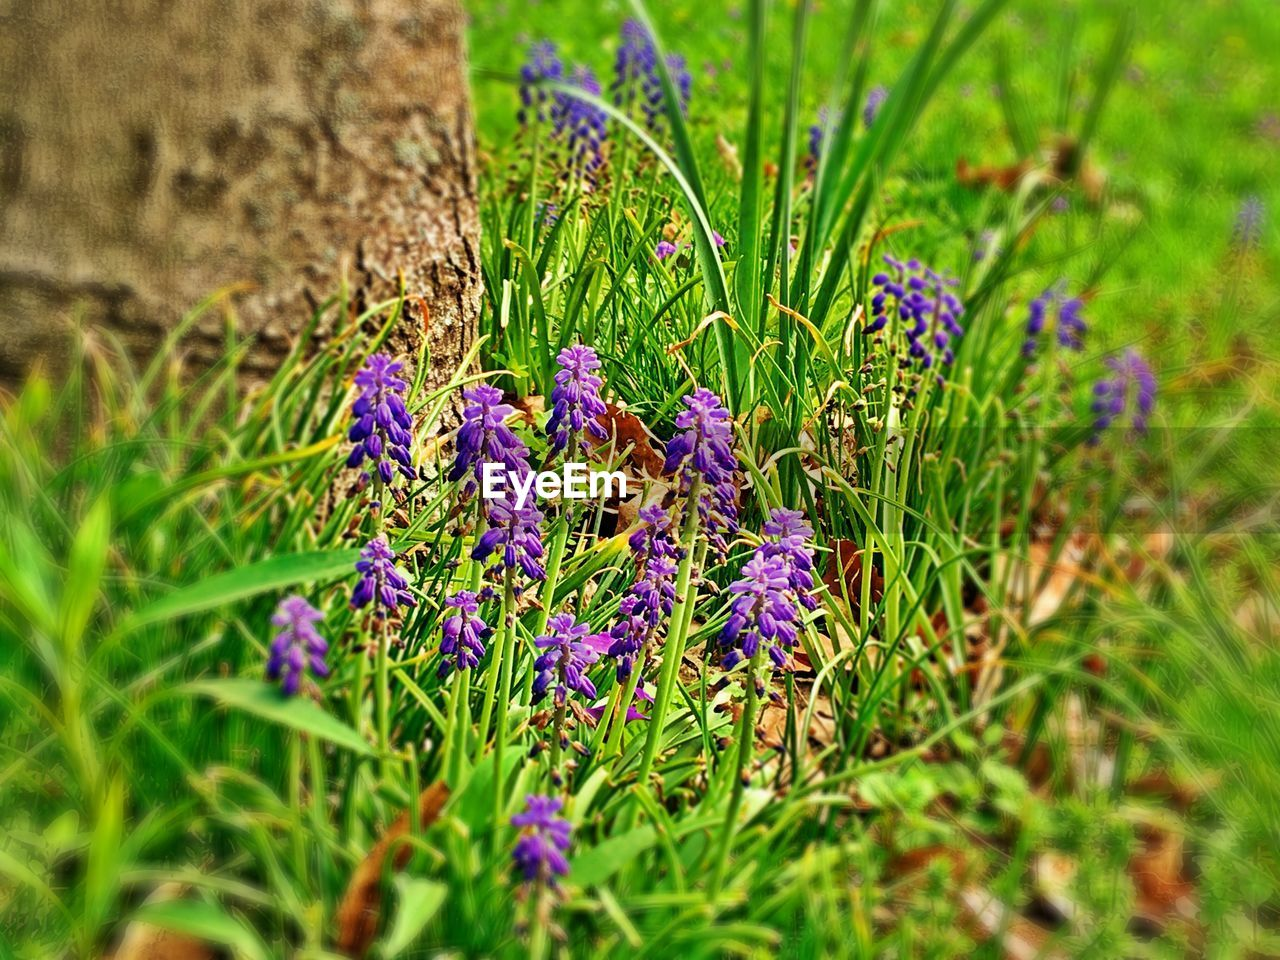 flowering plant, plant, flower, growth, beauty in nature, vulnerability, fragility, freshness, green color, purple, selective focus, nature, no people, field, day, land, close-up, petal, grass, flower head